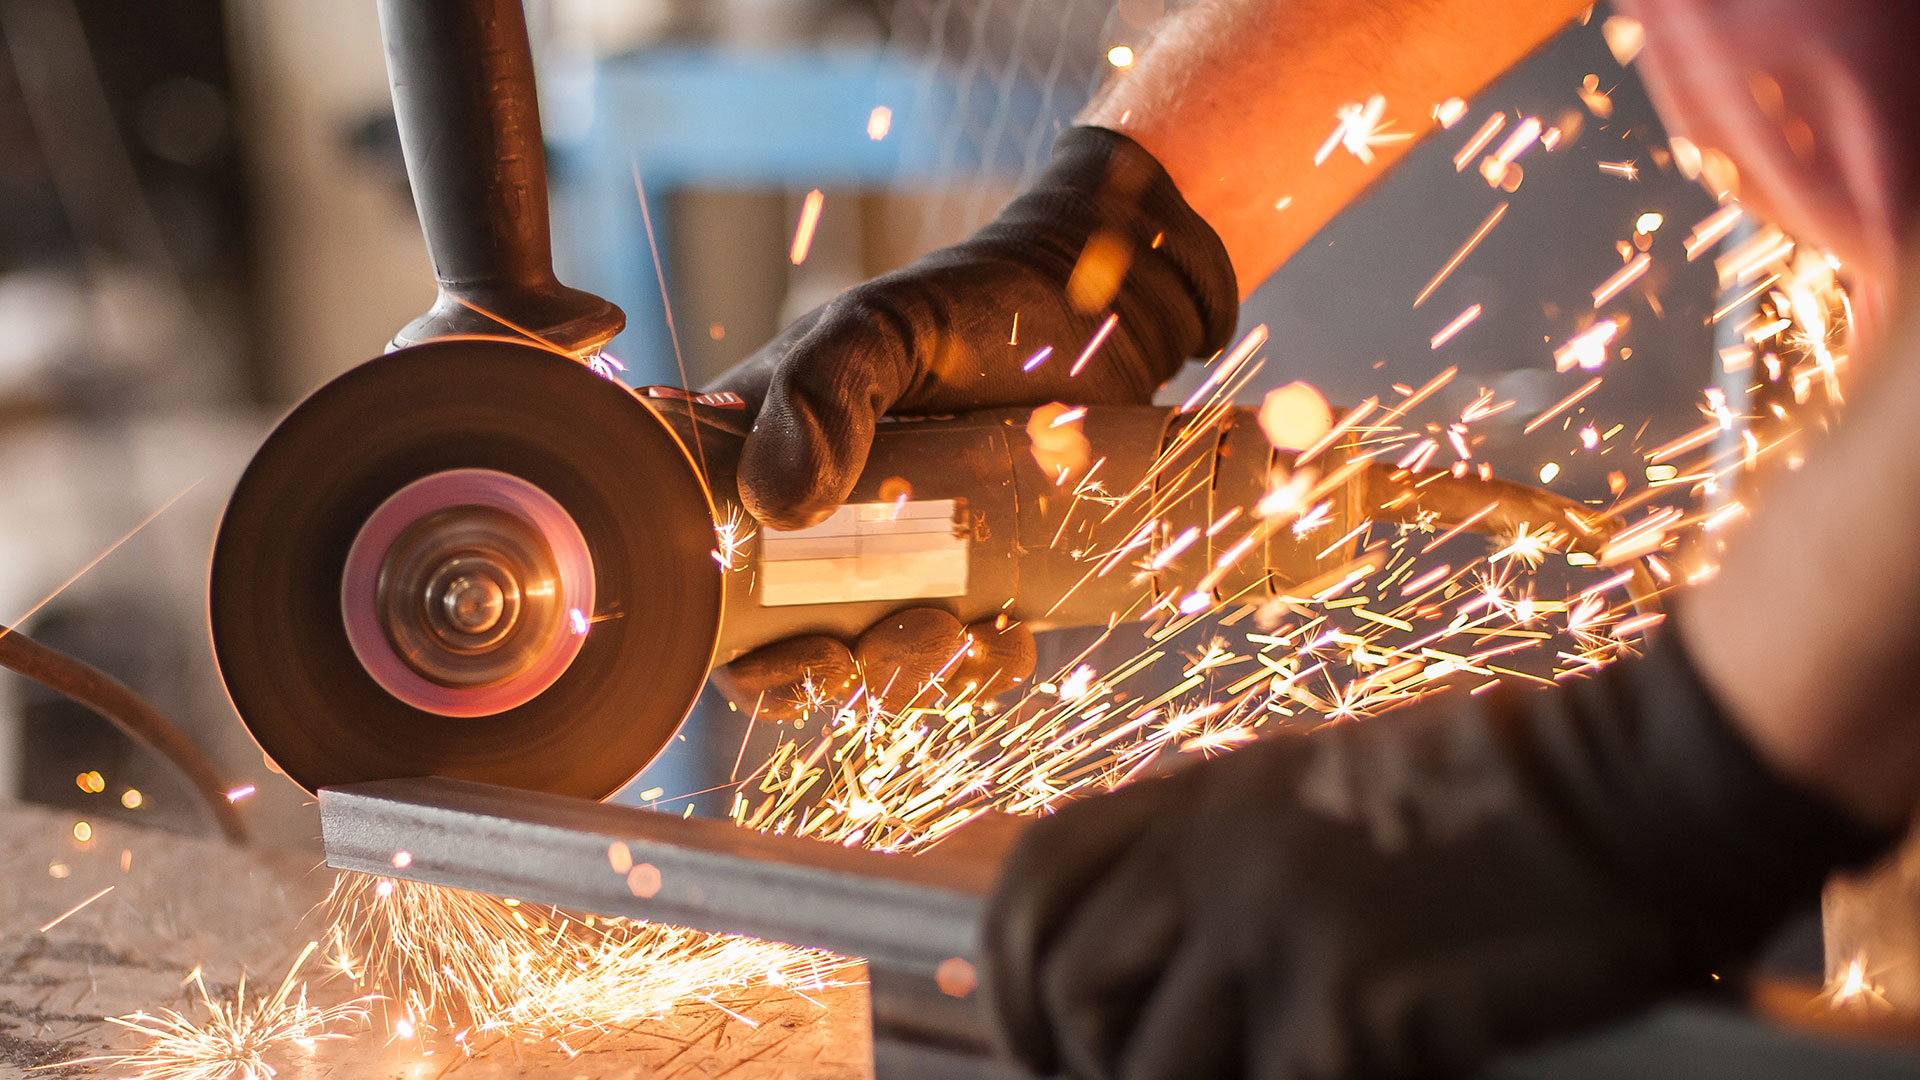 Using a steel grinder with sparks